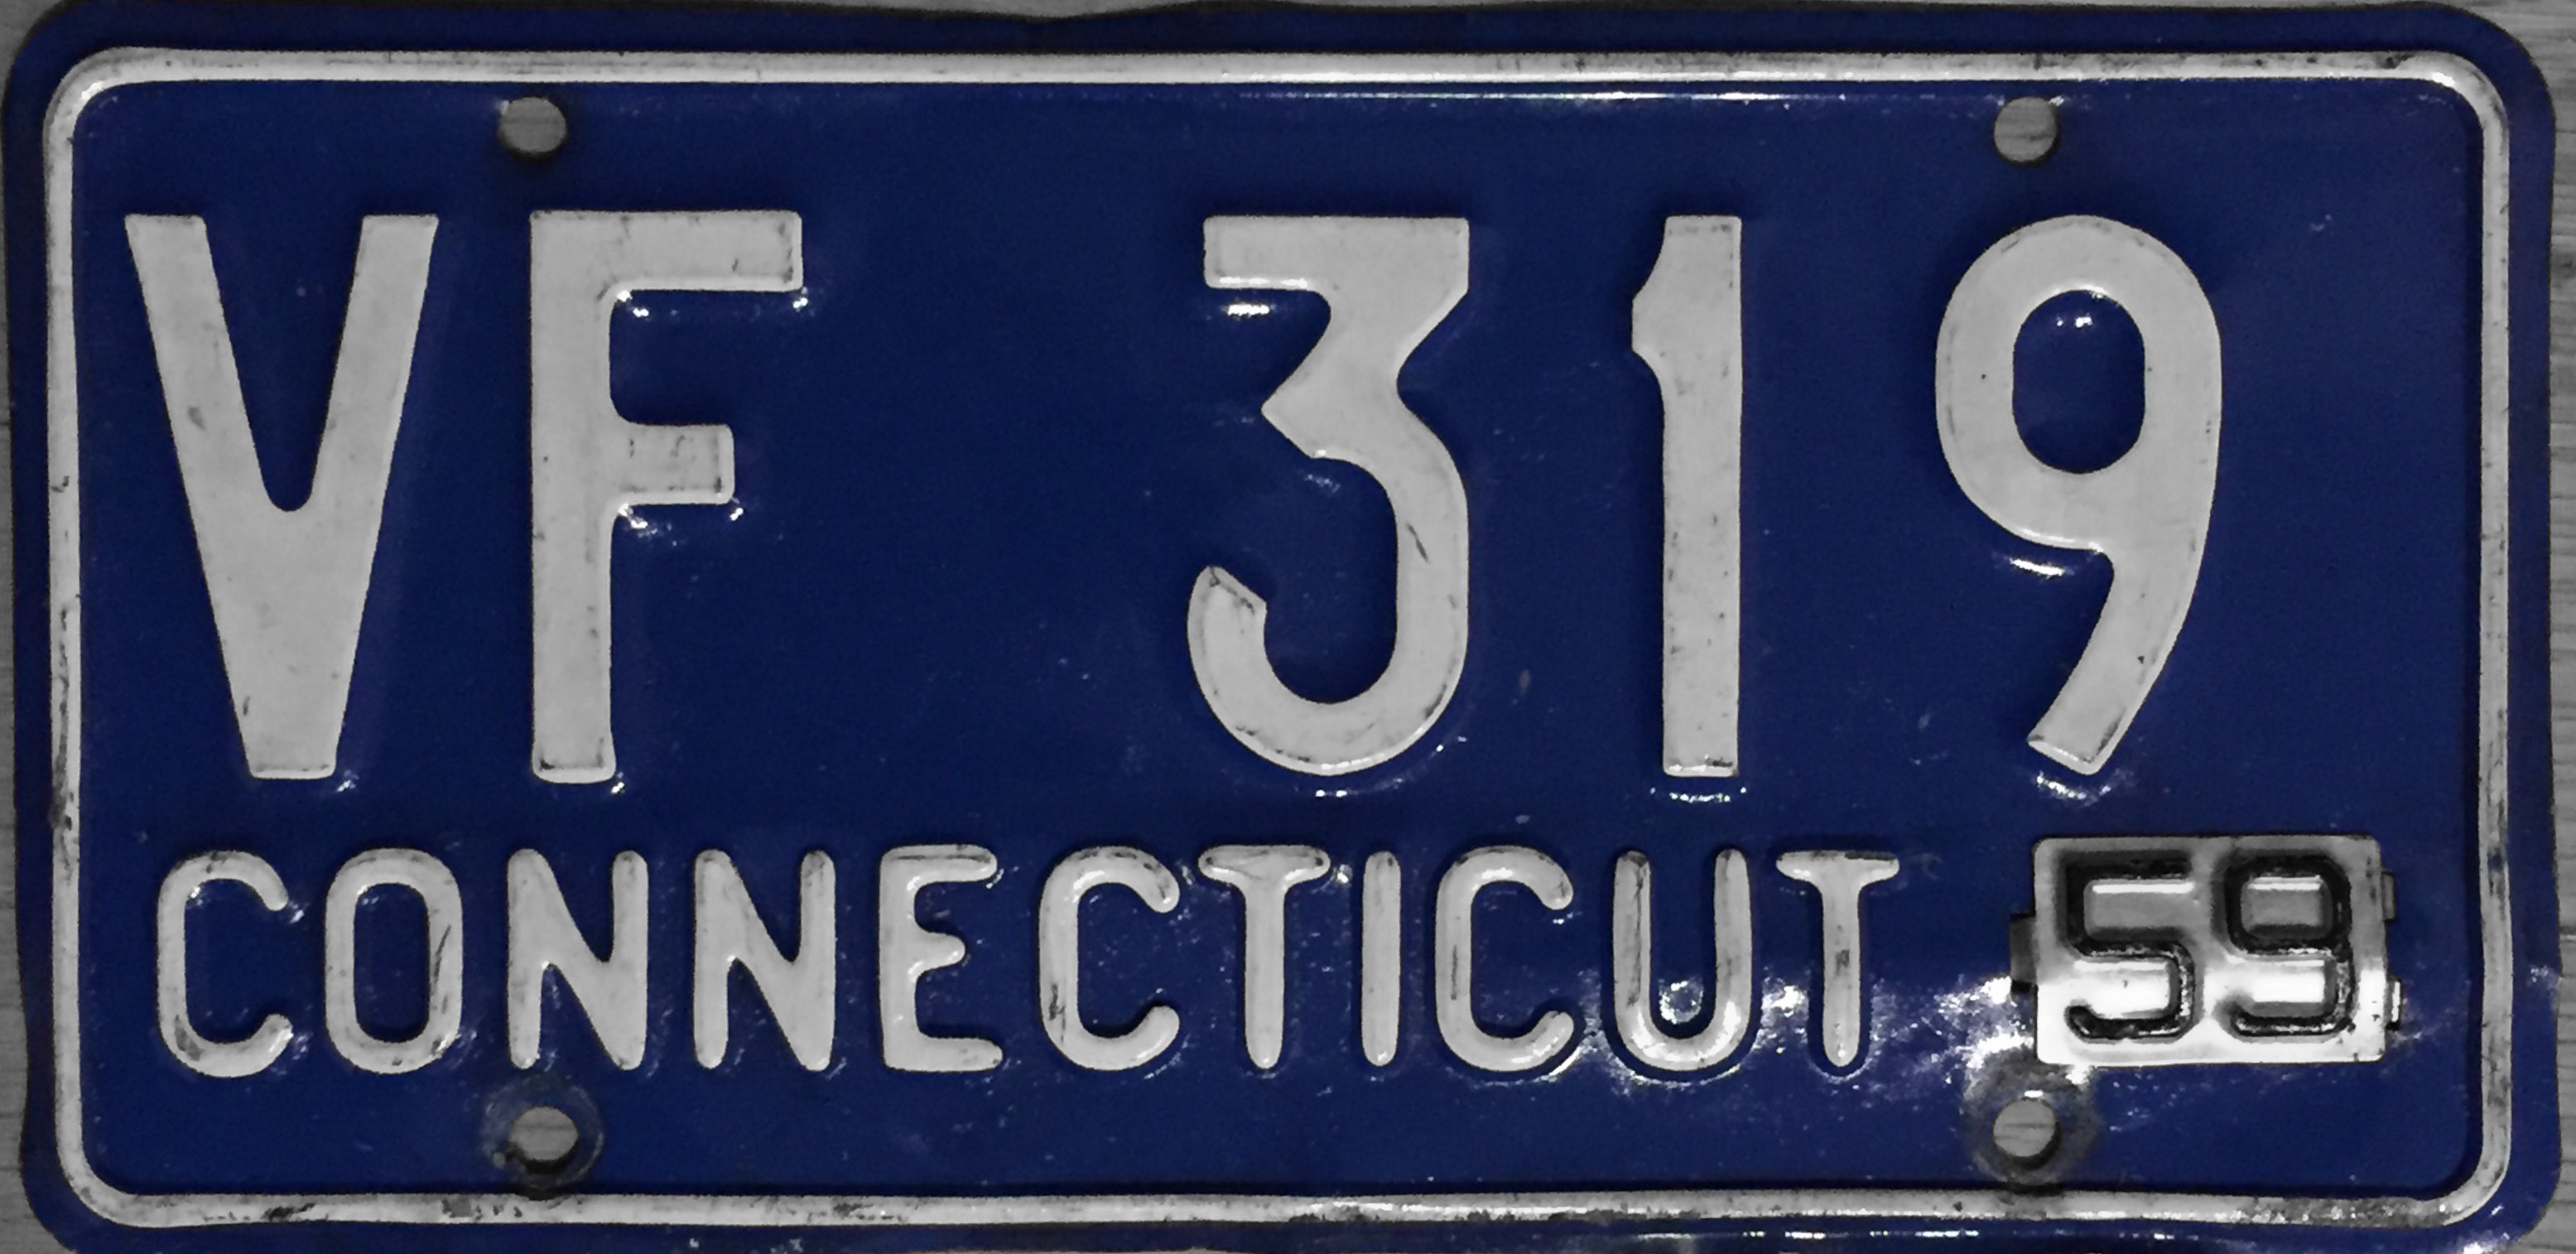 File1959 Connecticut License PlateJPG